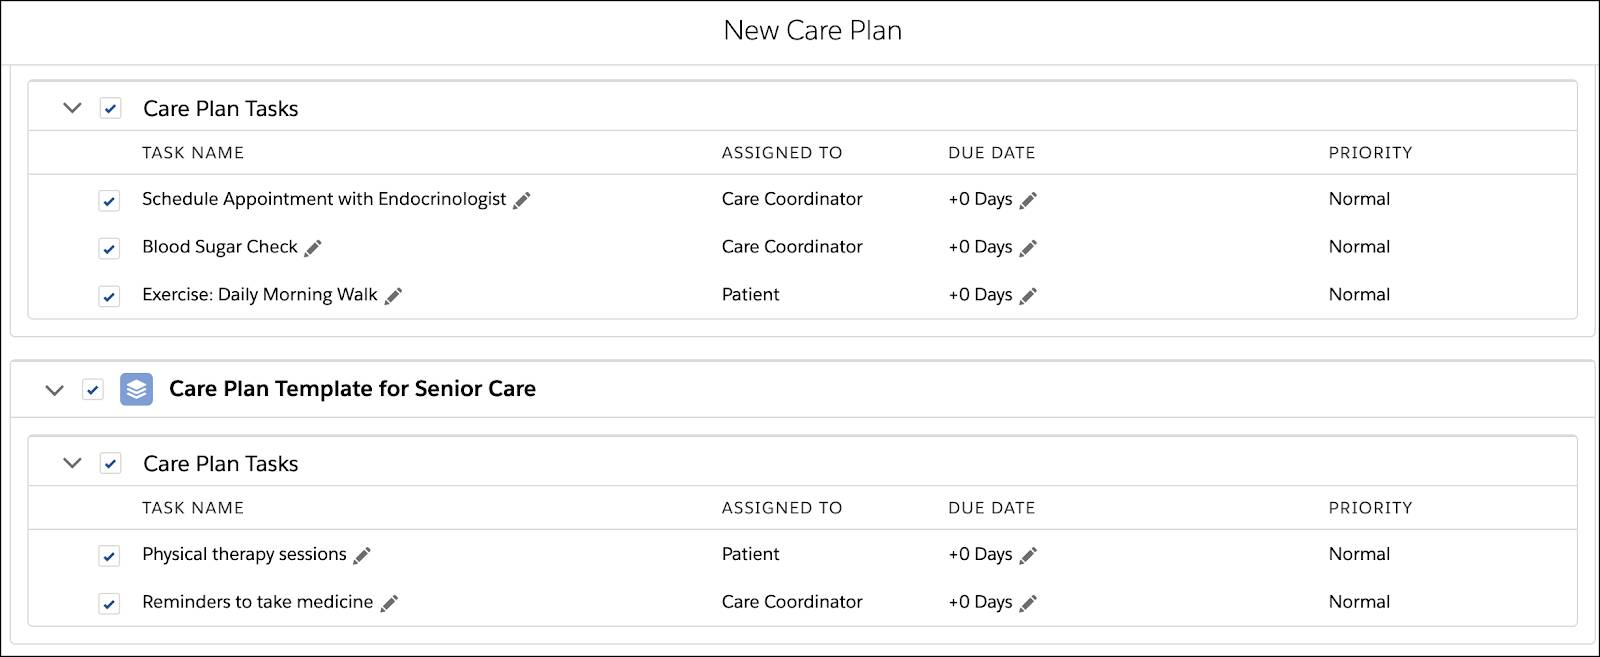 Table of care plan template tasks like a daily morning walk assigned to the patient and a blood sugar check assigned to the care coordinator.